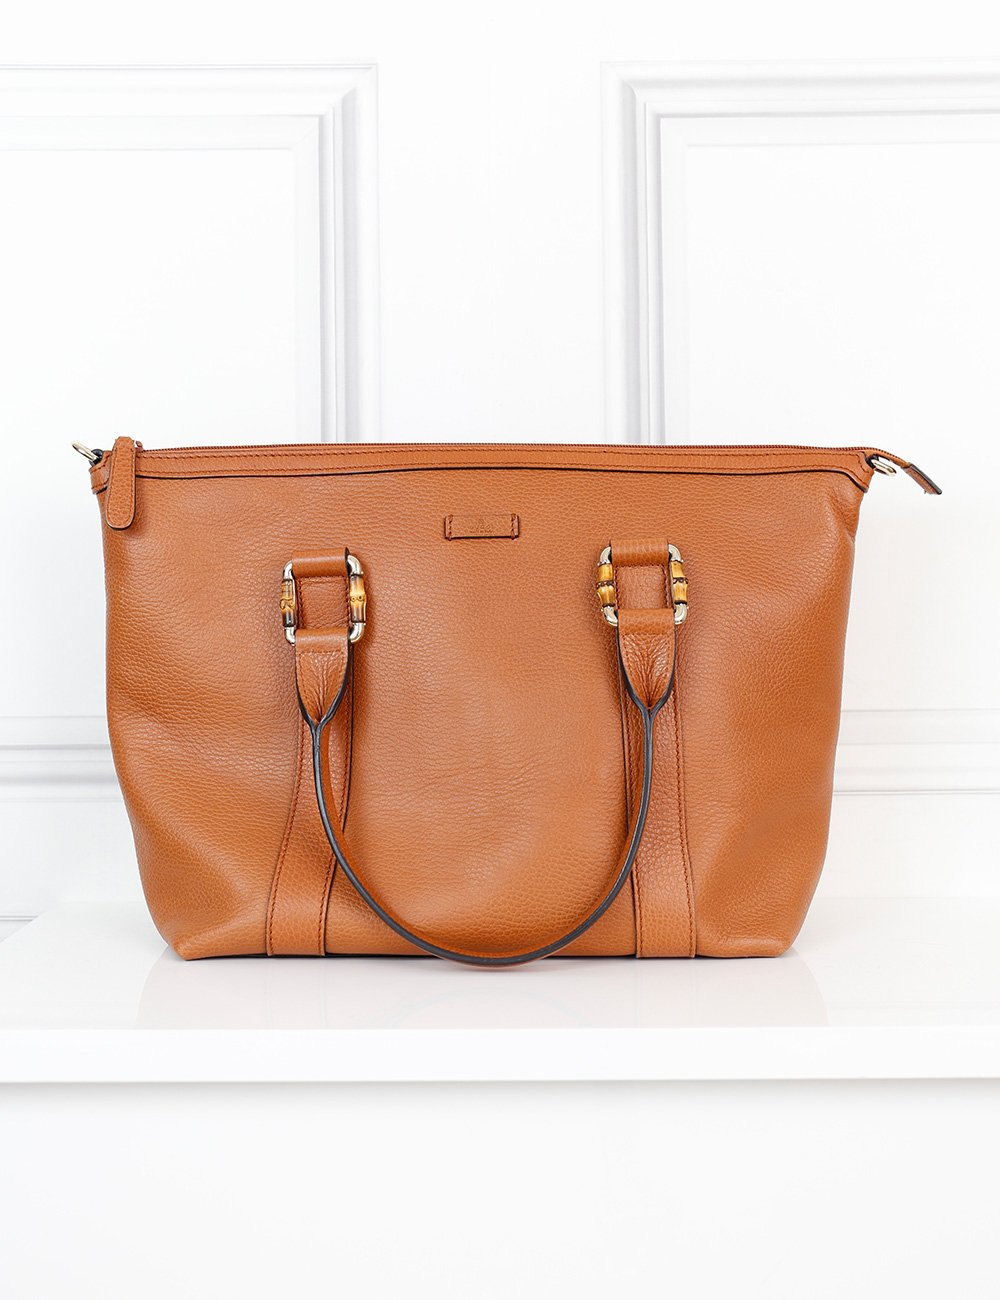 Gucci tan zipped tote bag with bamboo details- My Wardrobe Mistakes